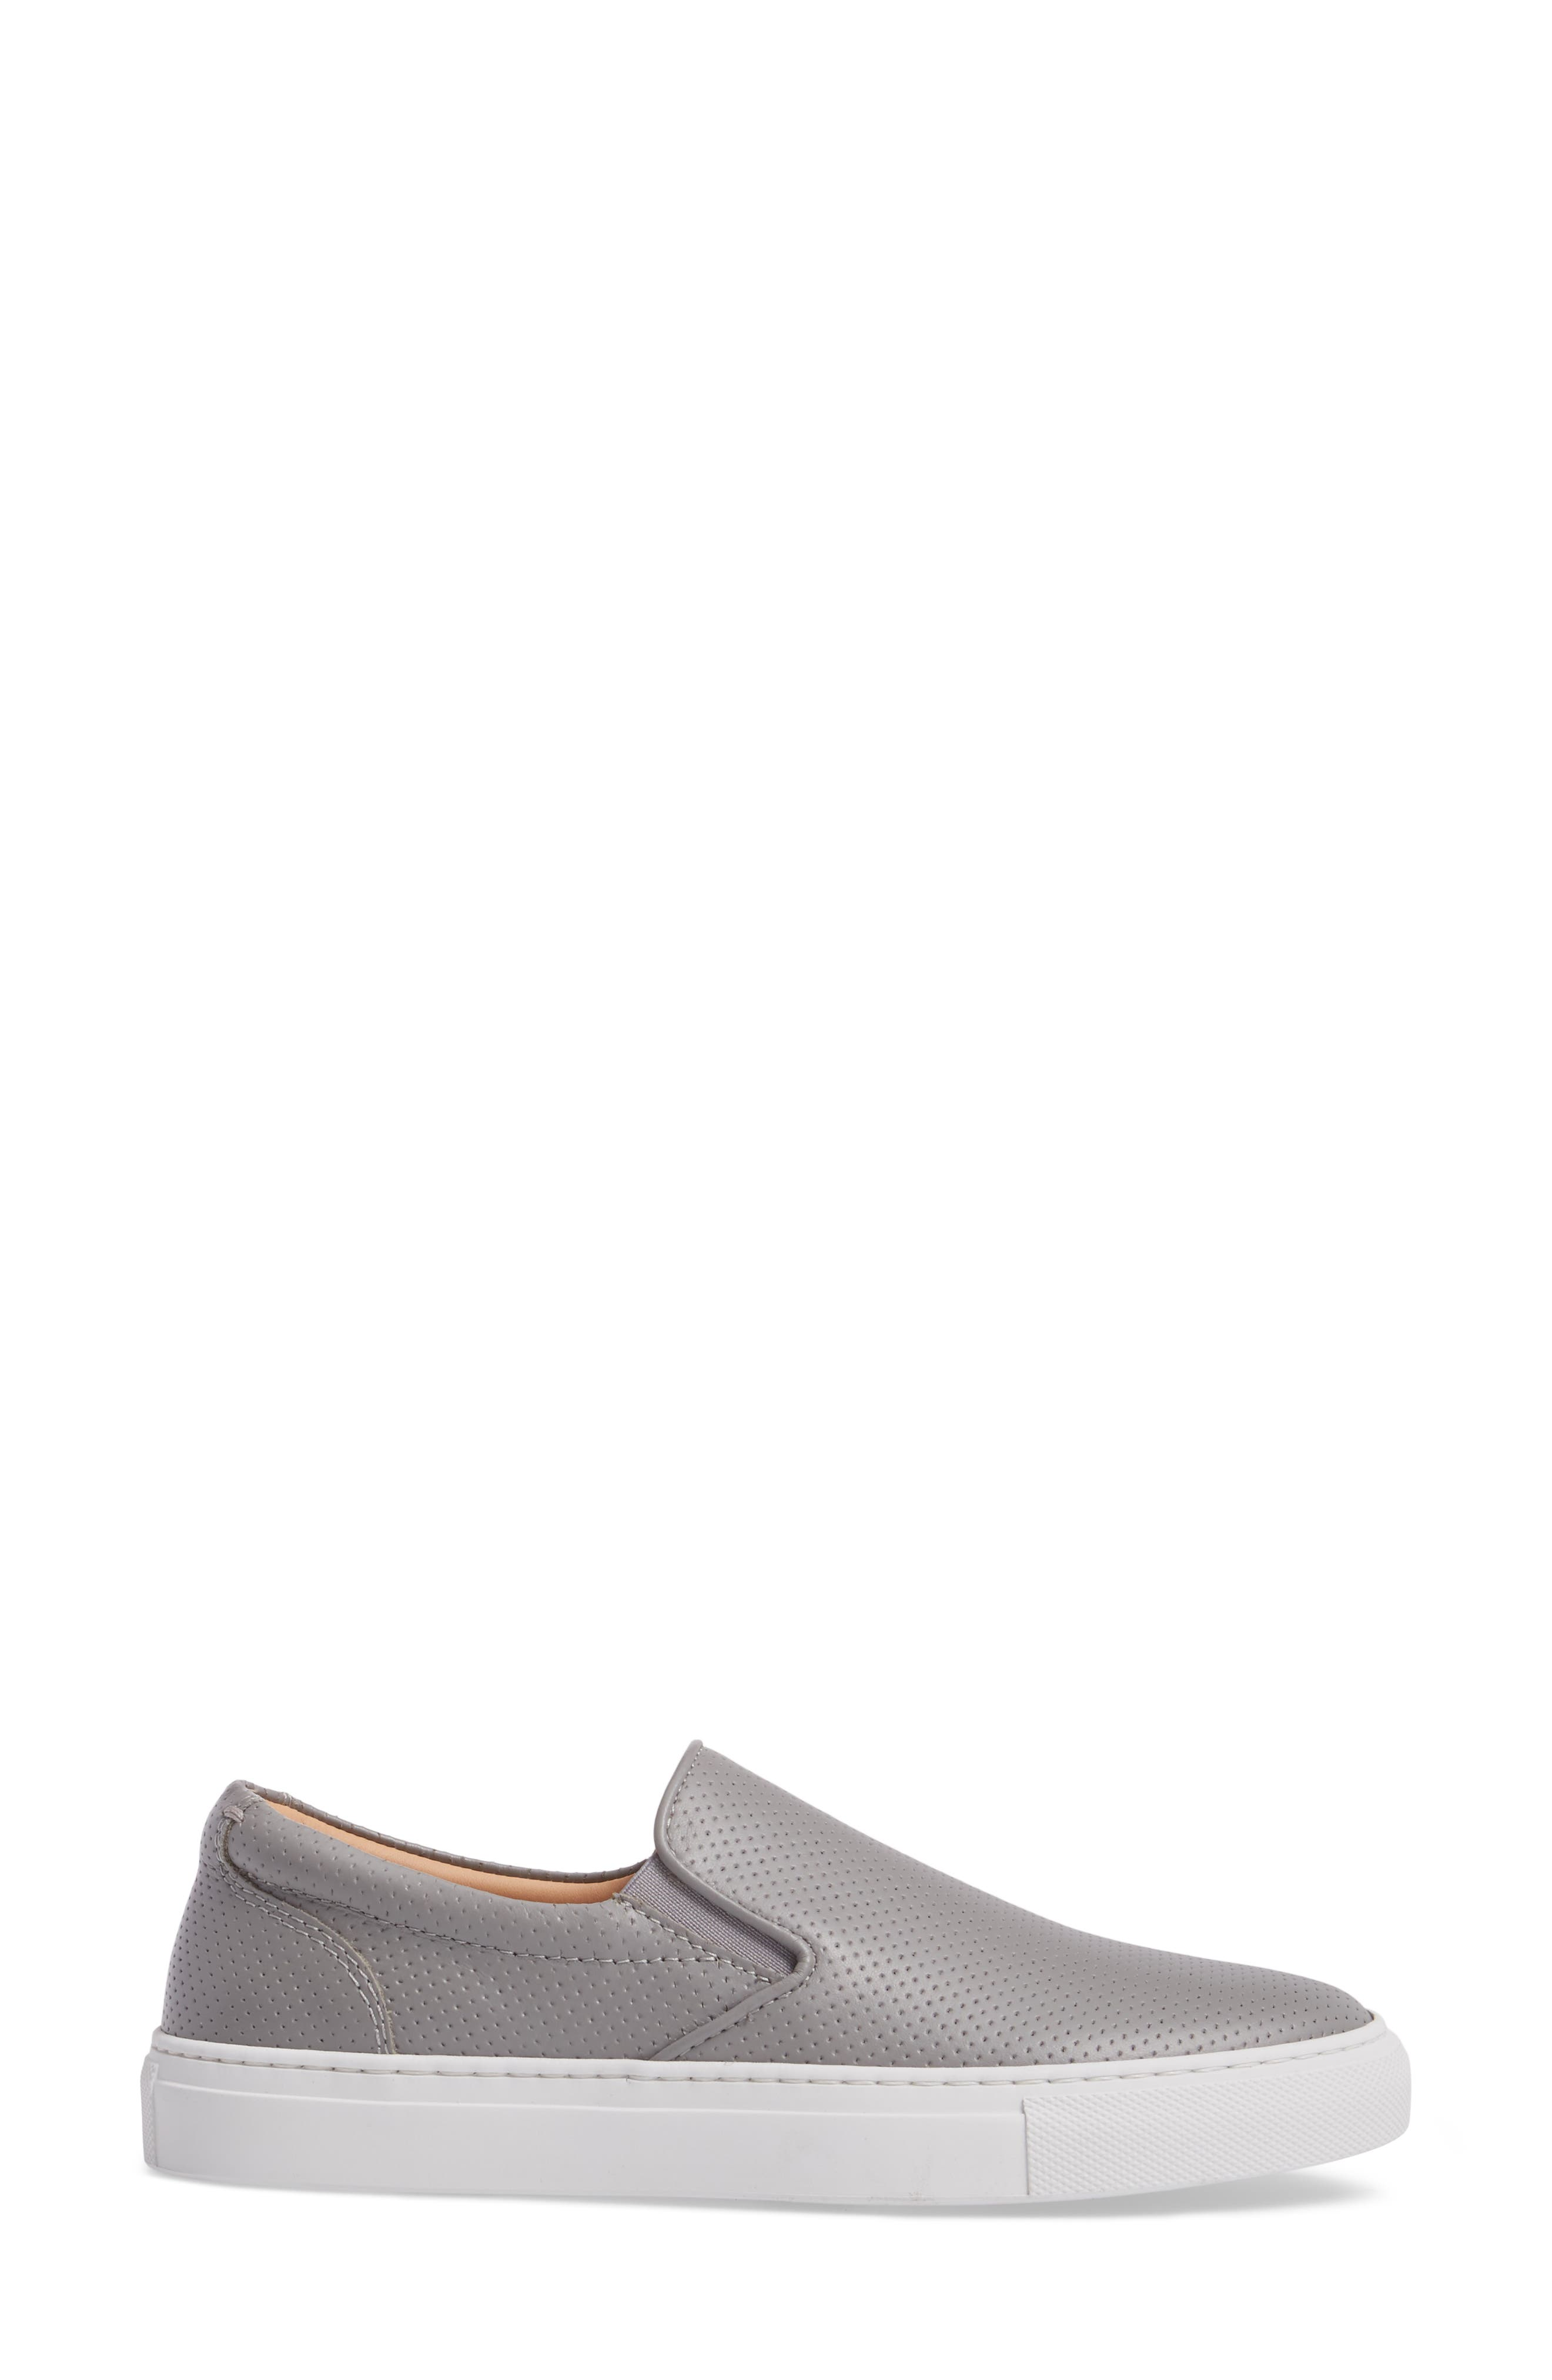 Wooster Slip-On Sneaker,                             Alternate thumbnail 3, color,                             GREY PERFORATED